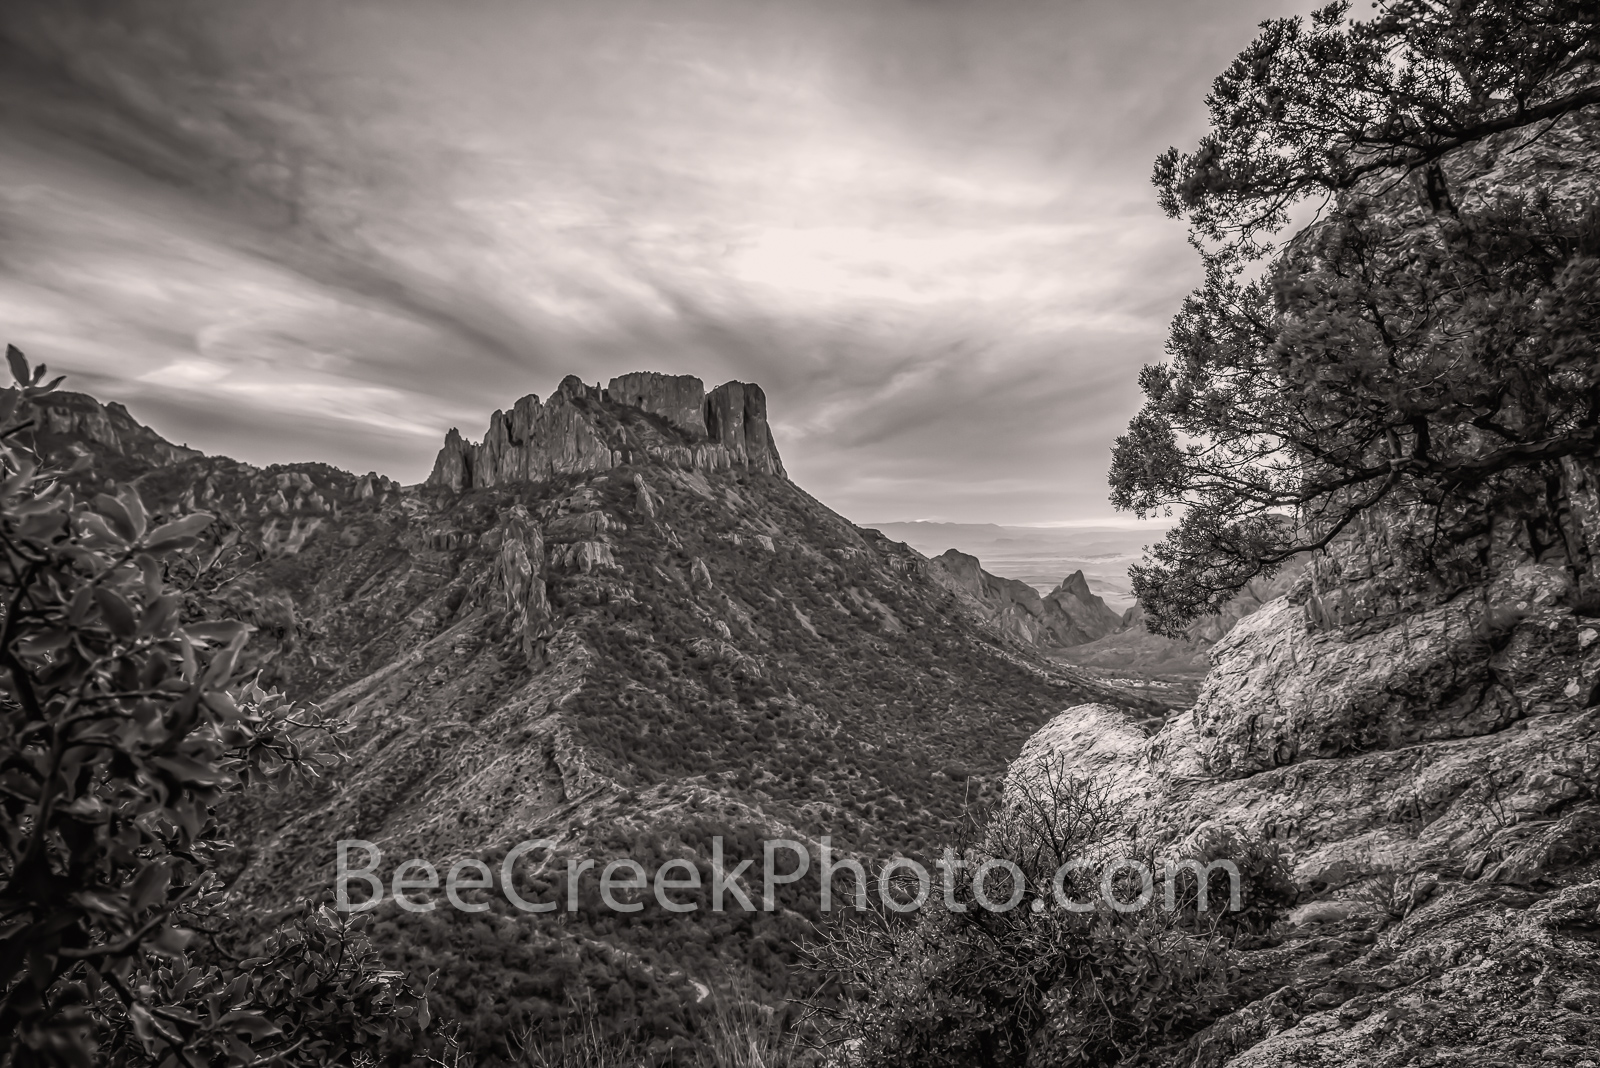 Lost Mine Trail B W - It was a perfect day when I left to climb the Lost Mine Trail in Big Bend National Park but by the time...